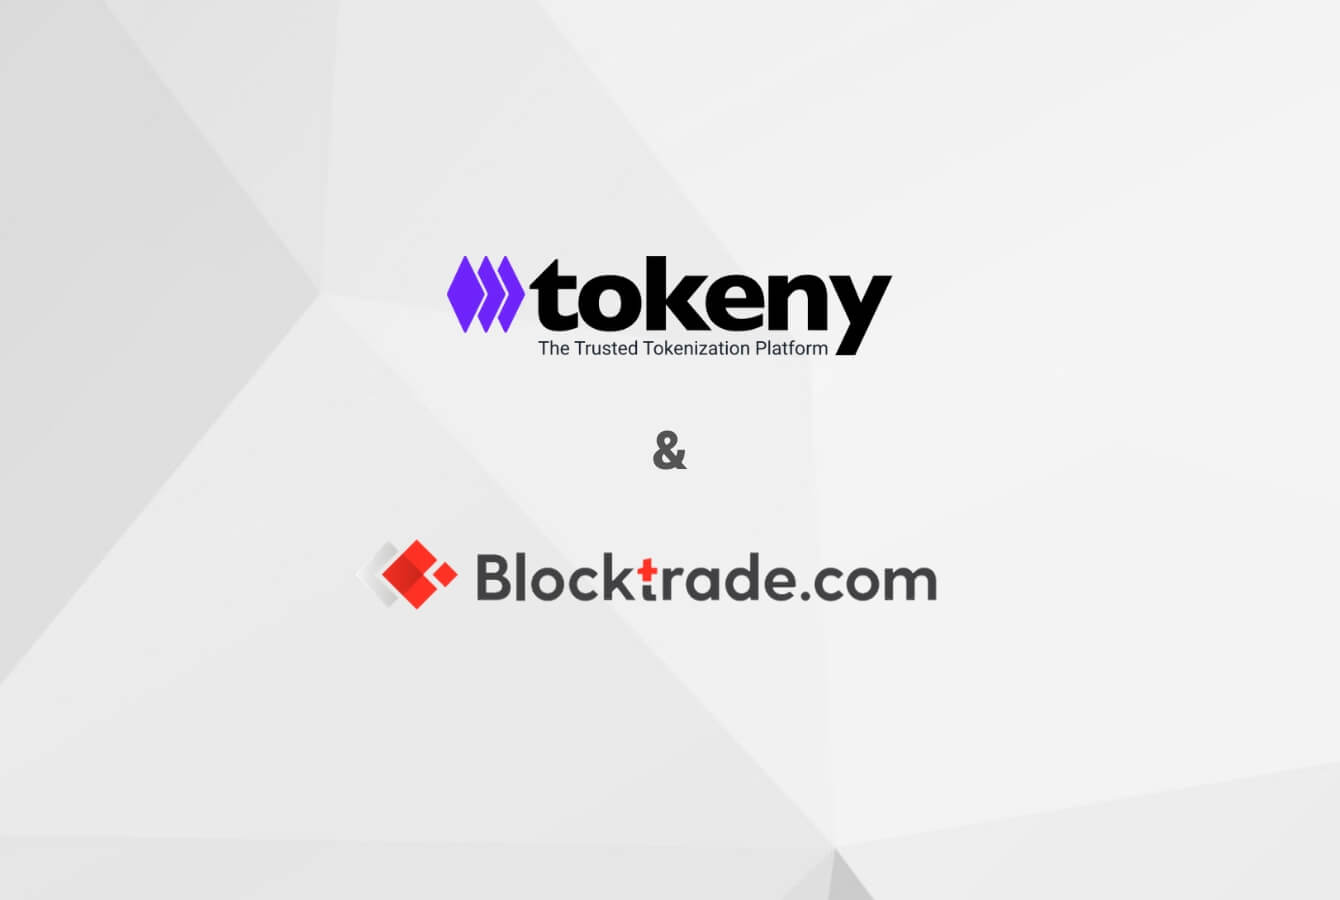 Tokeny and Blocktrade Partner to Promote Compliant Security Token Trading